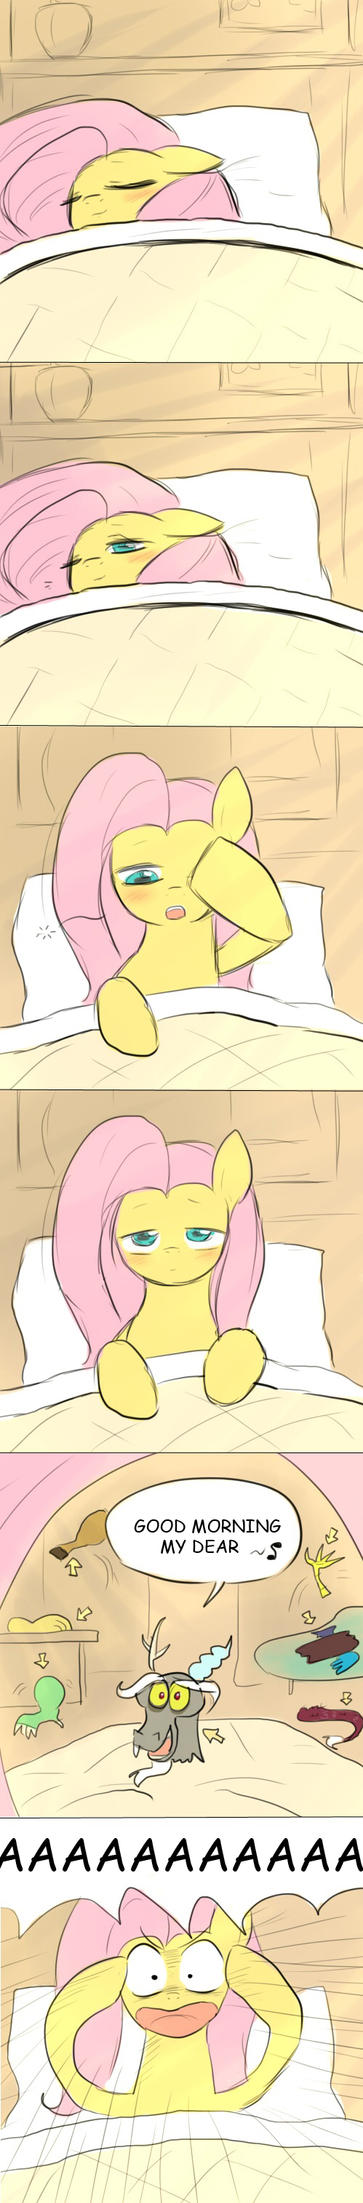 MLP: good morning by keterok